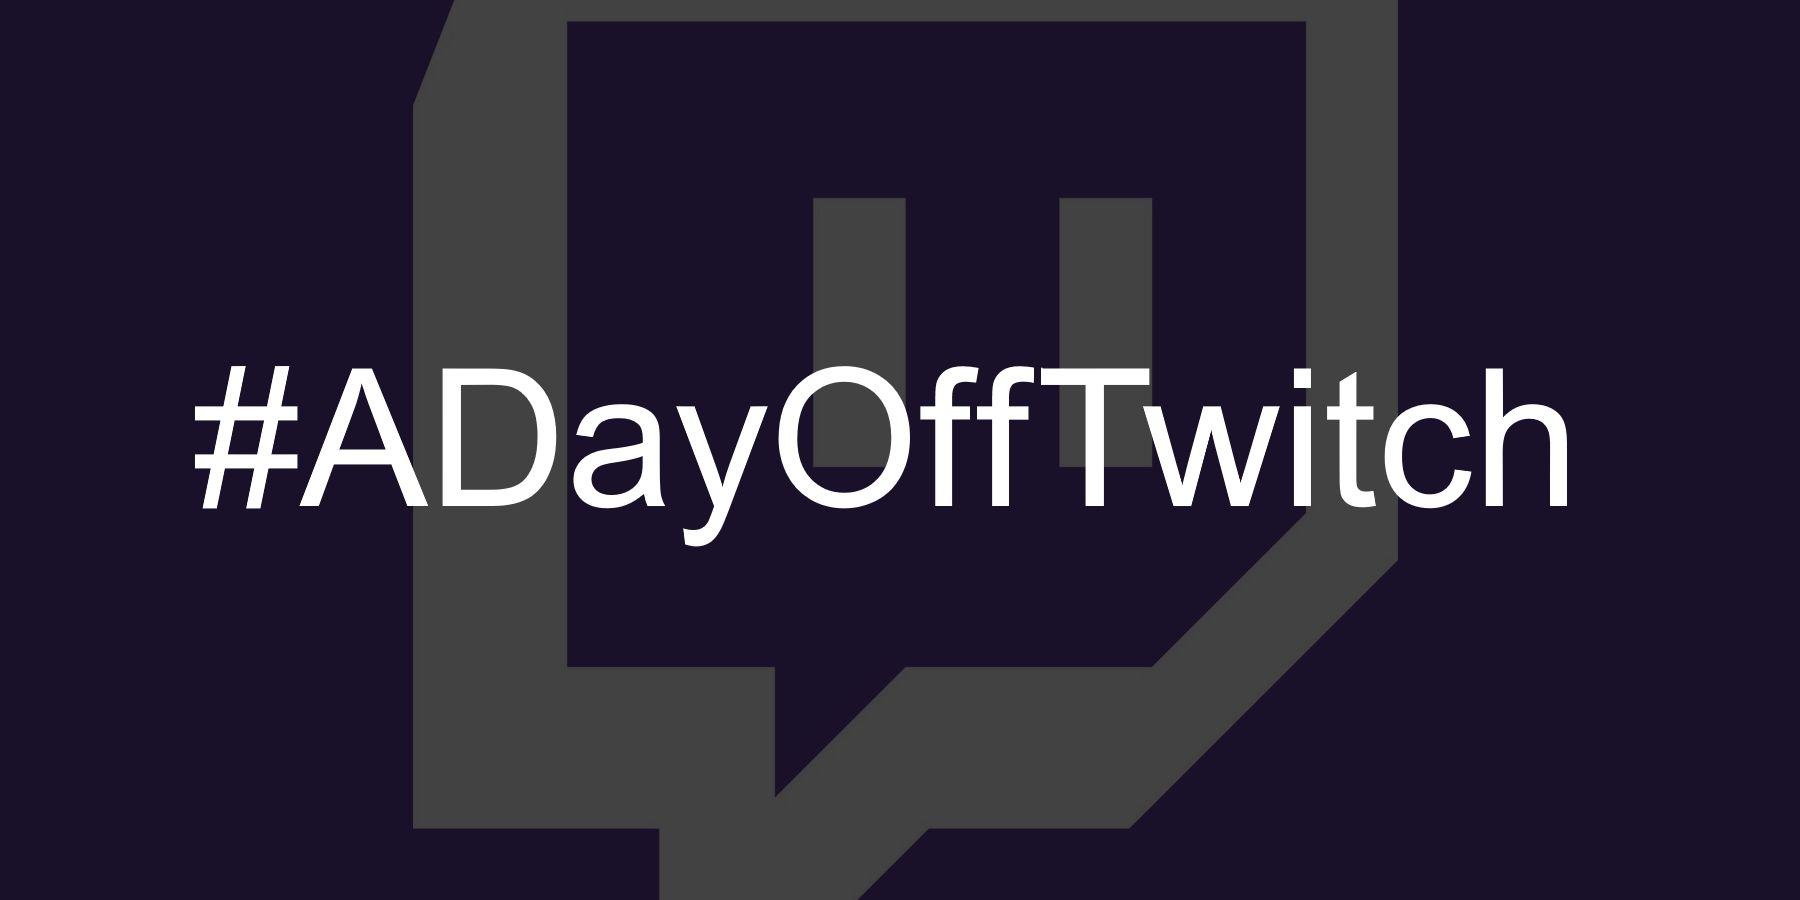 #ADayOffTwitch is Twitch's day of reckoning